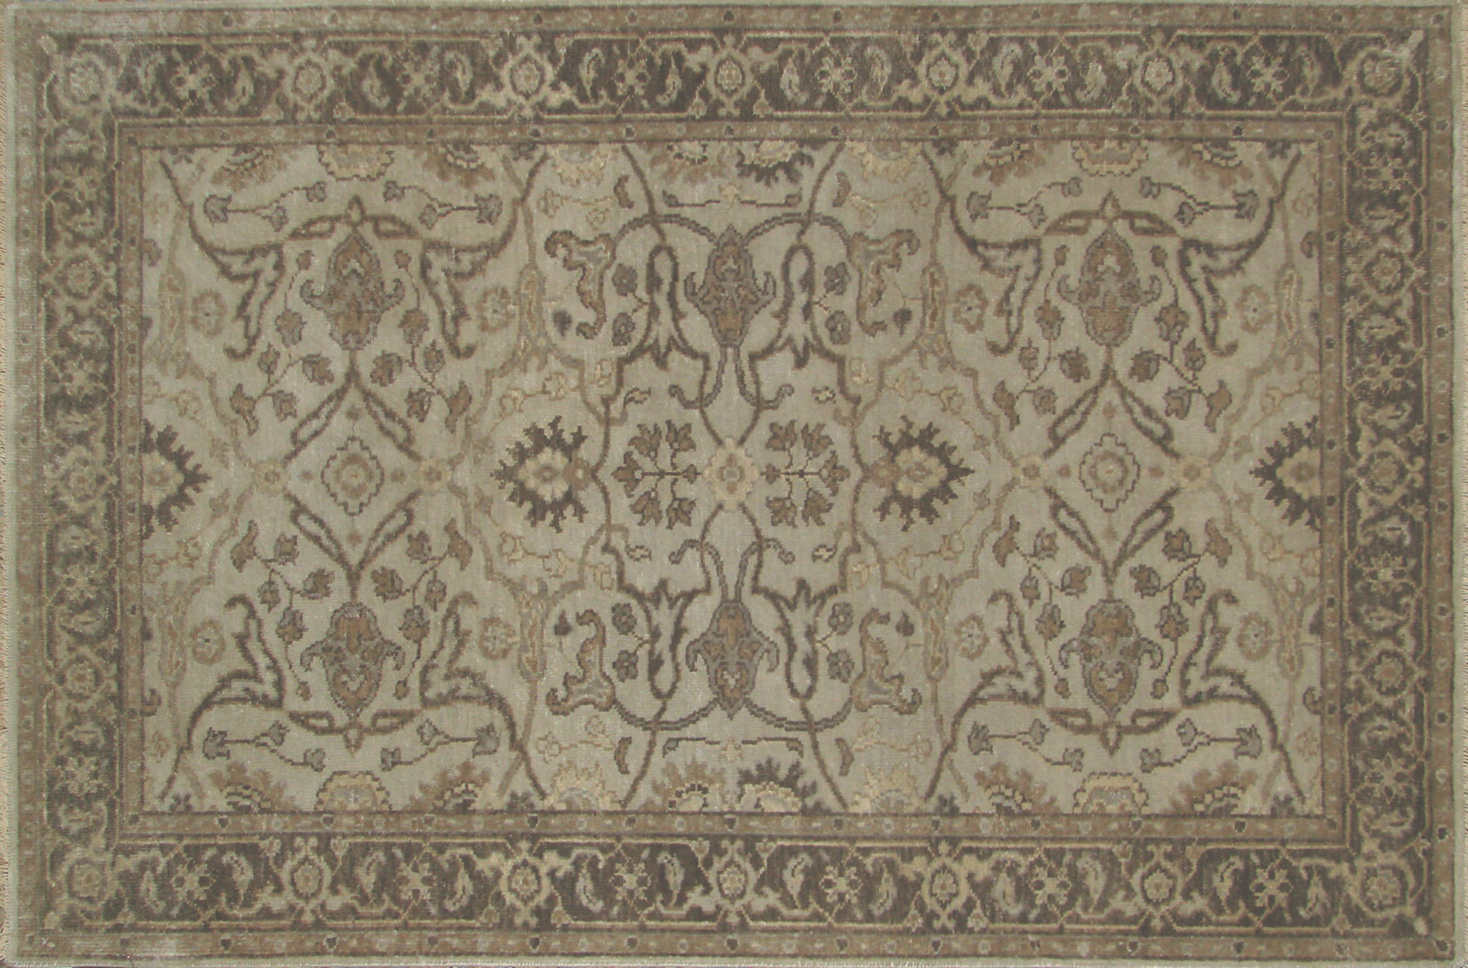 4x6 Traditional Hand Knotted Wool Area Rug - MR19817